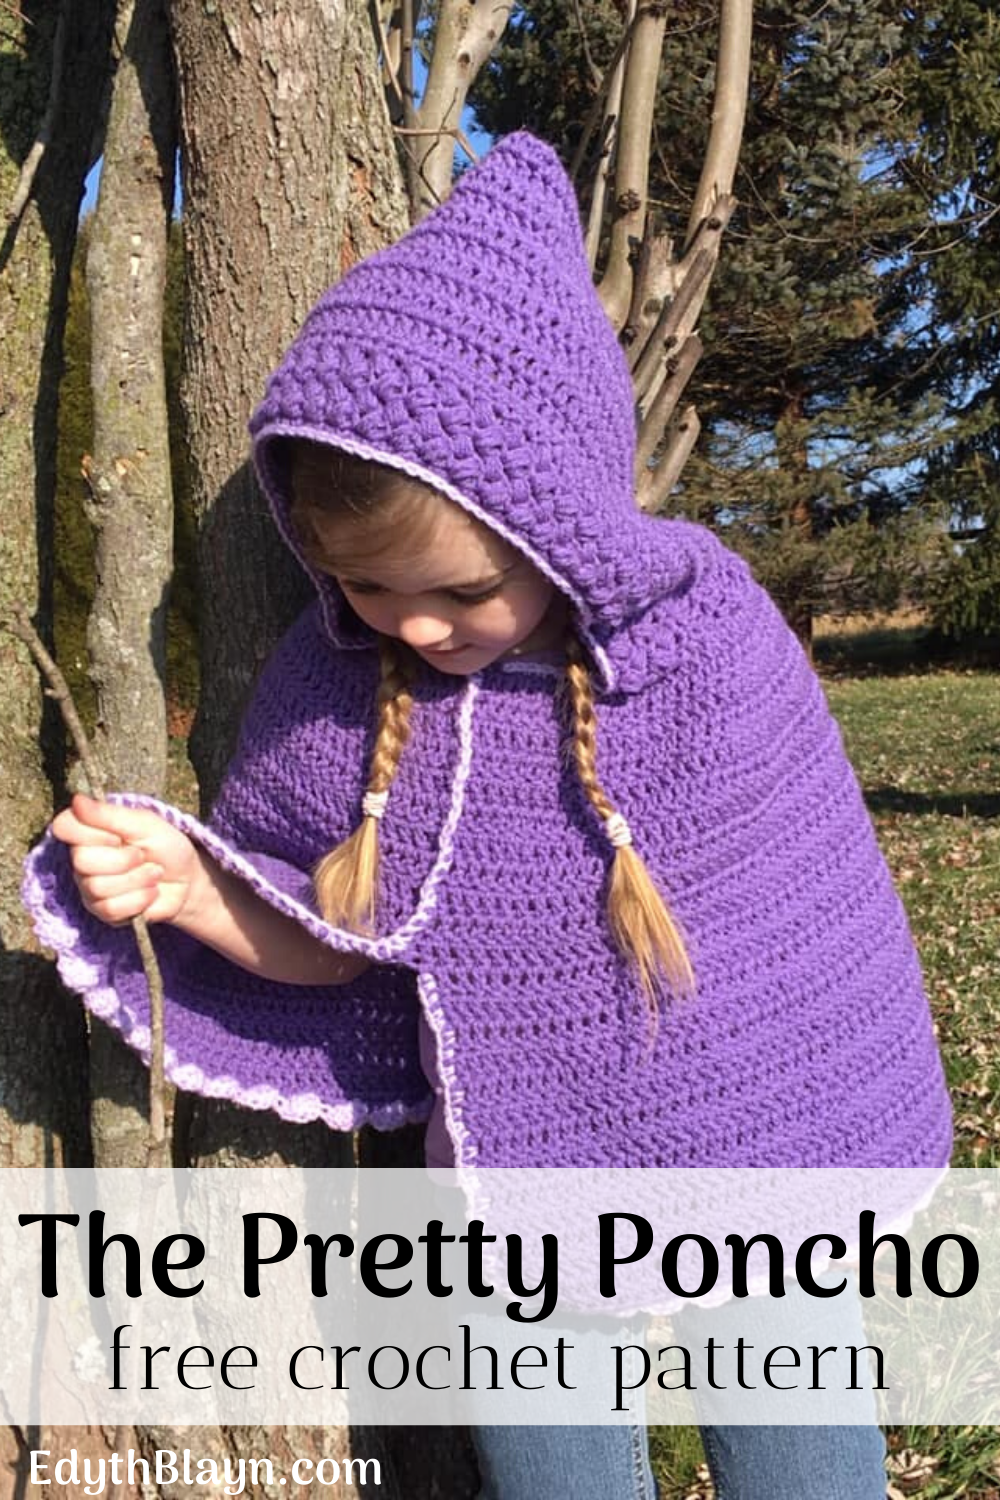 The Pretty Poncho - Free Crochet Pattern